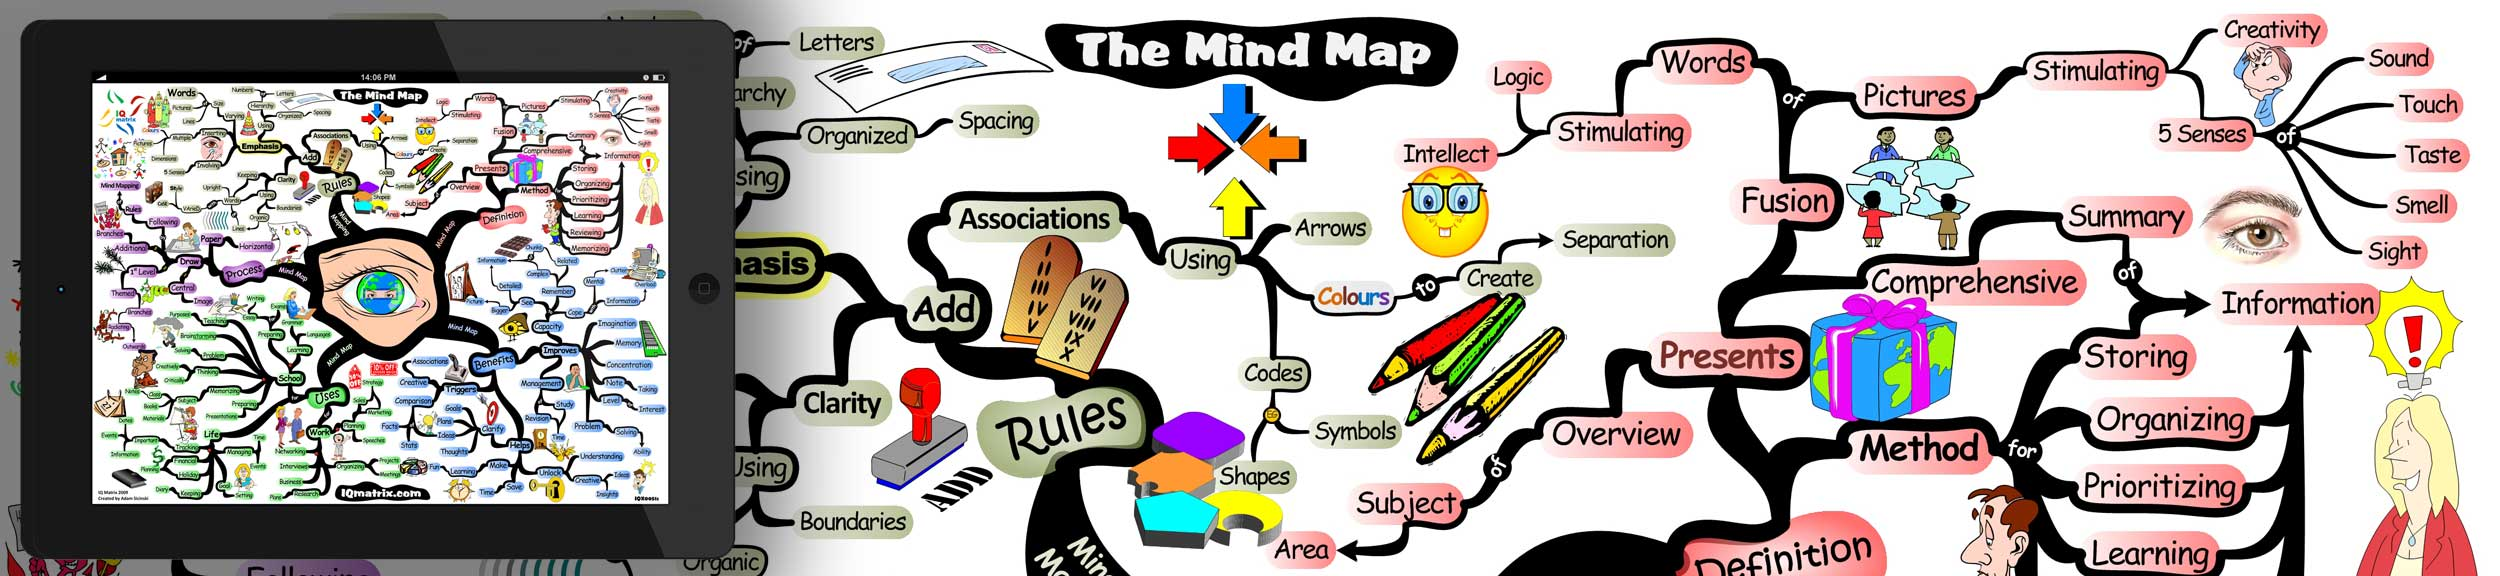 The Complete Guide On How To Mind Map For Beginners